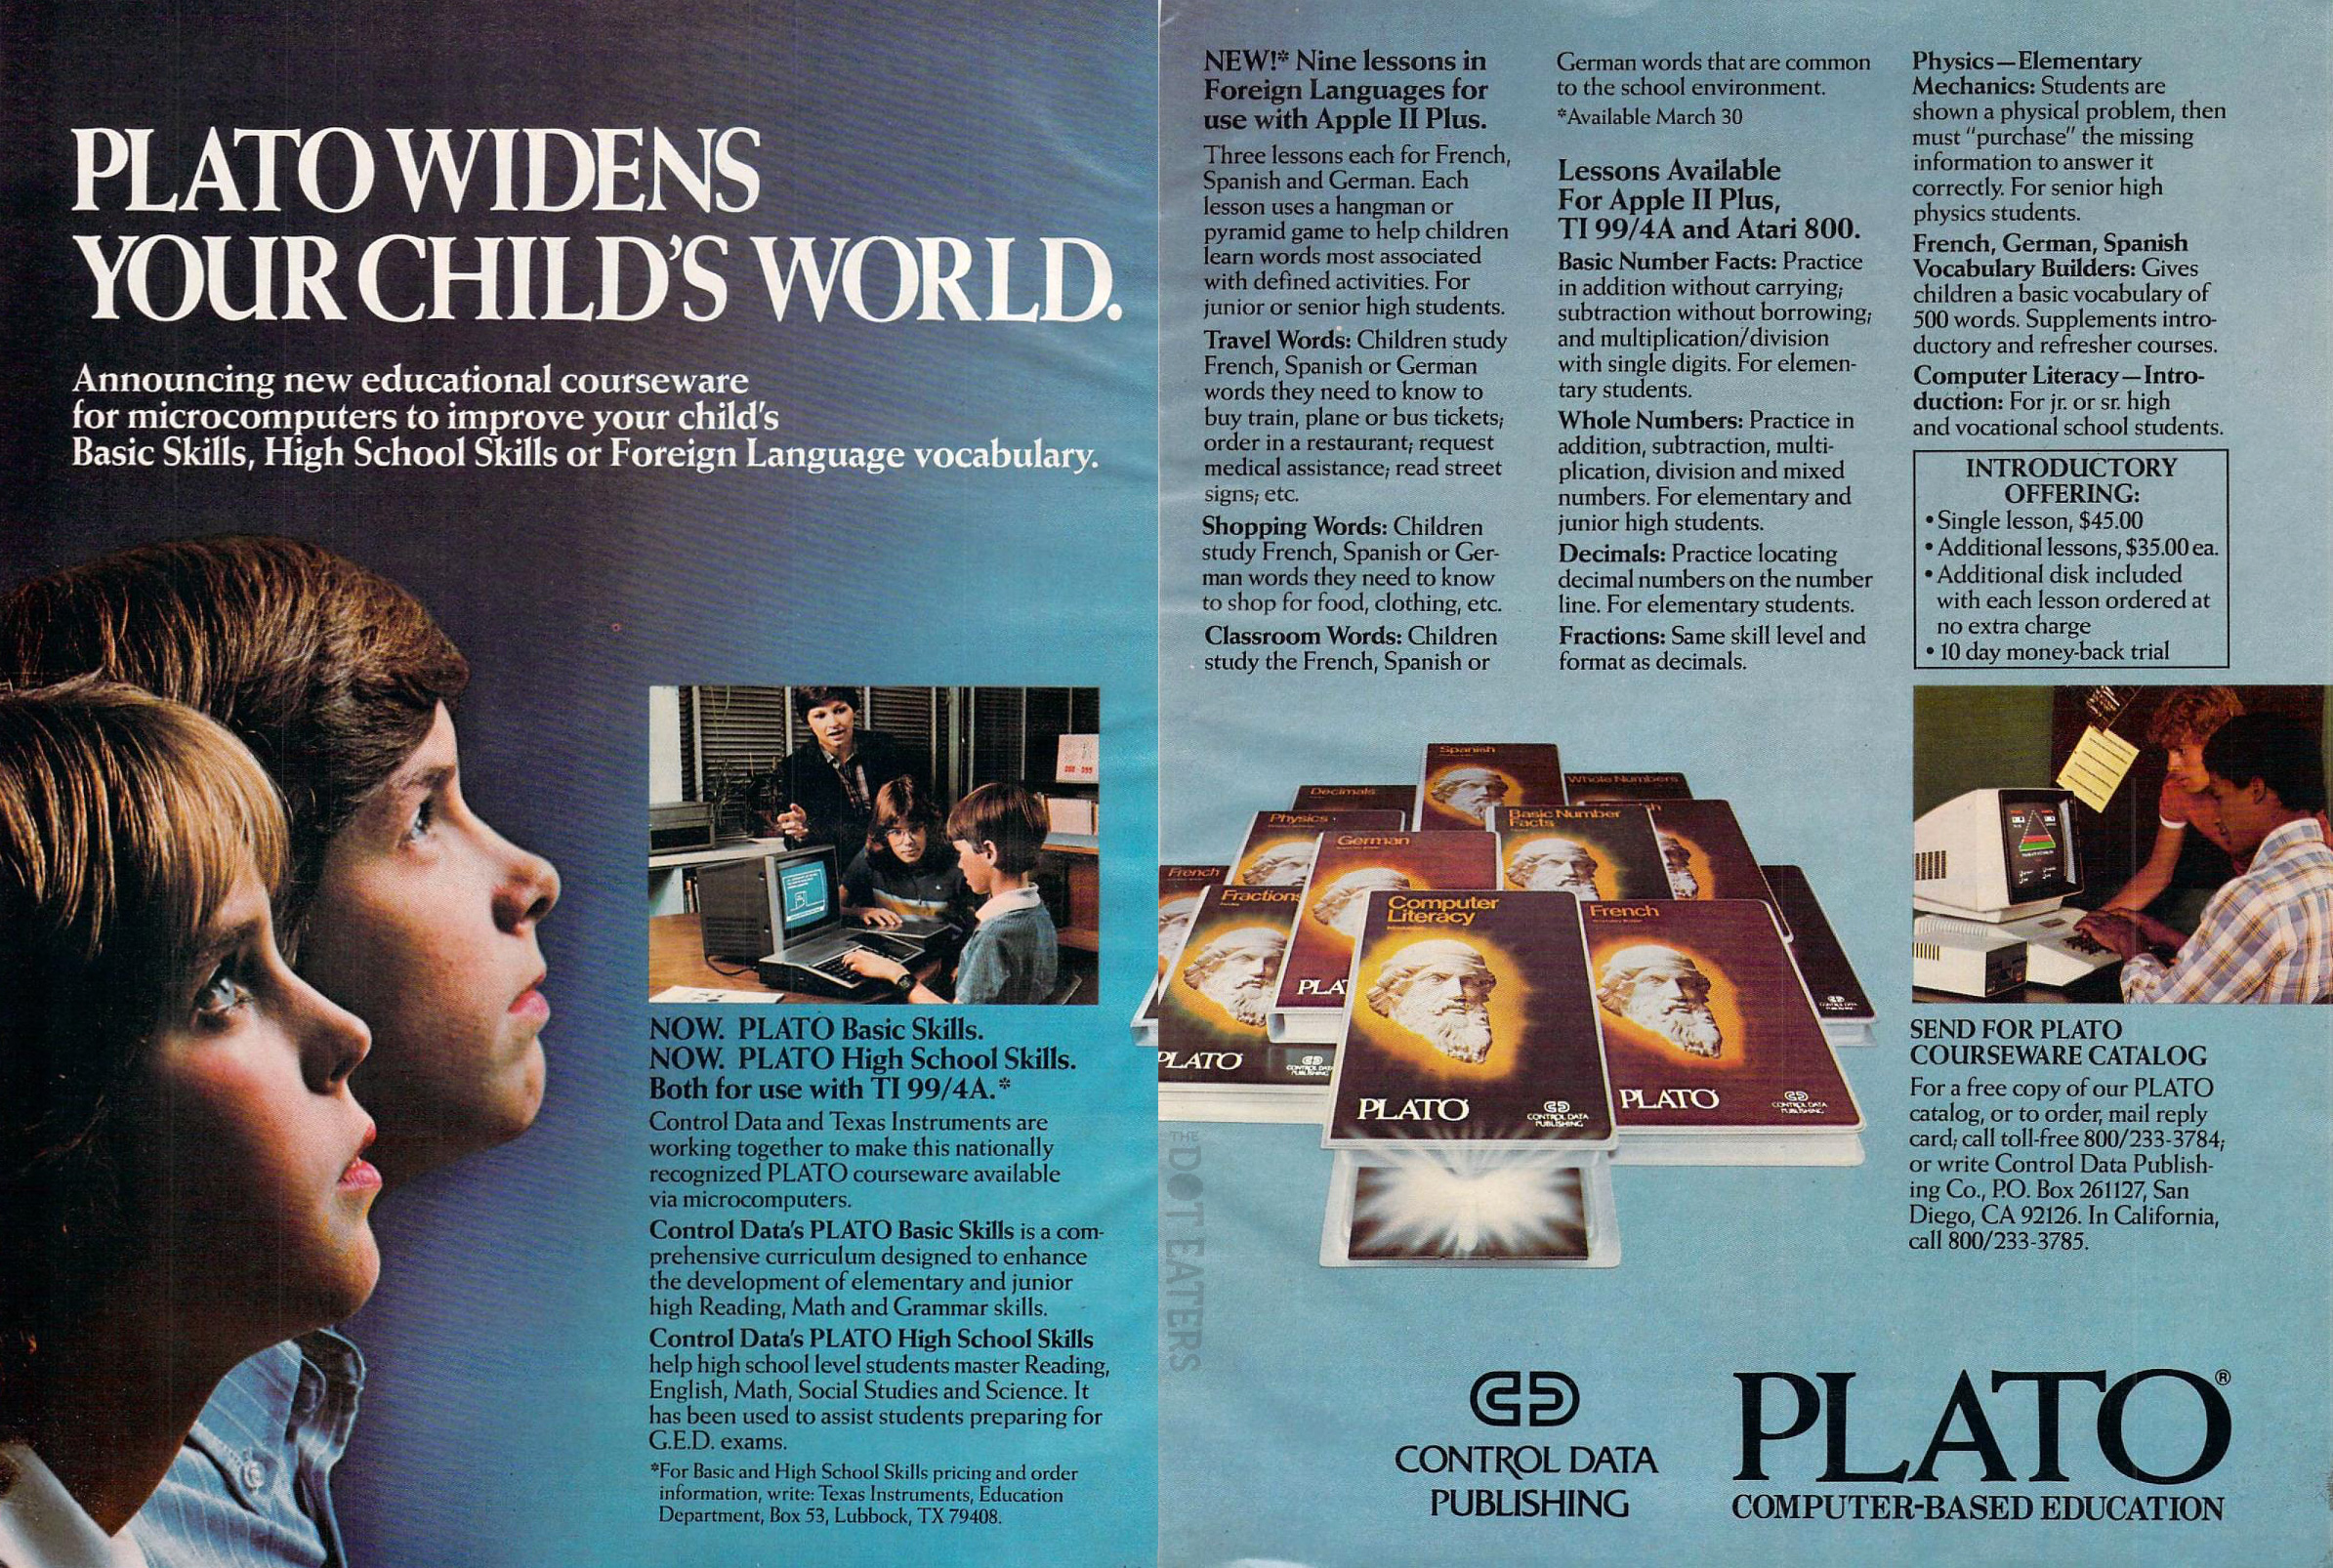 Ad for PLATO, a computer-based educational system by Control Data, 1983